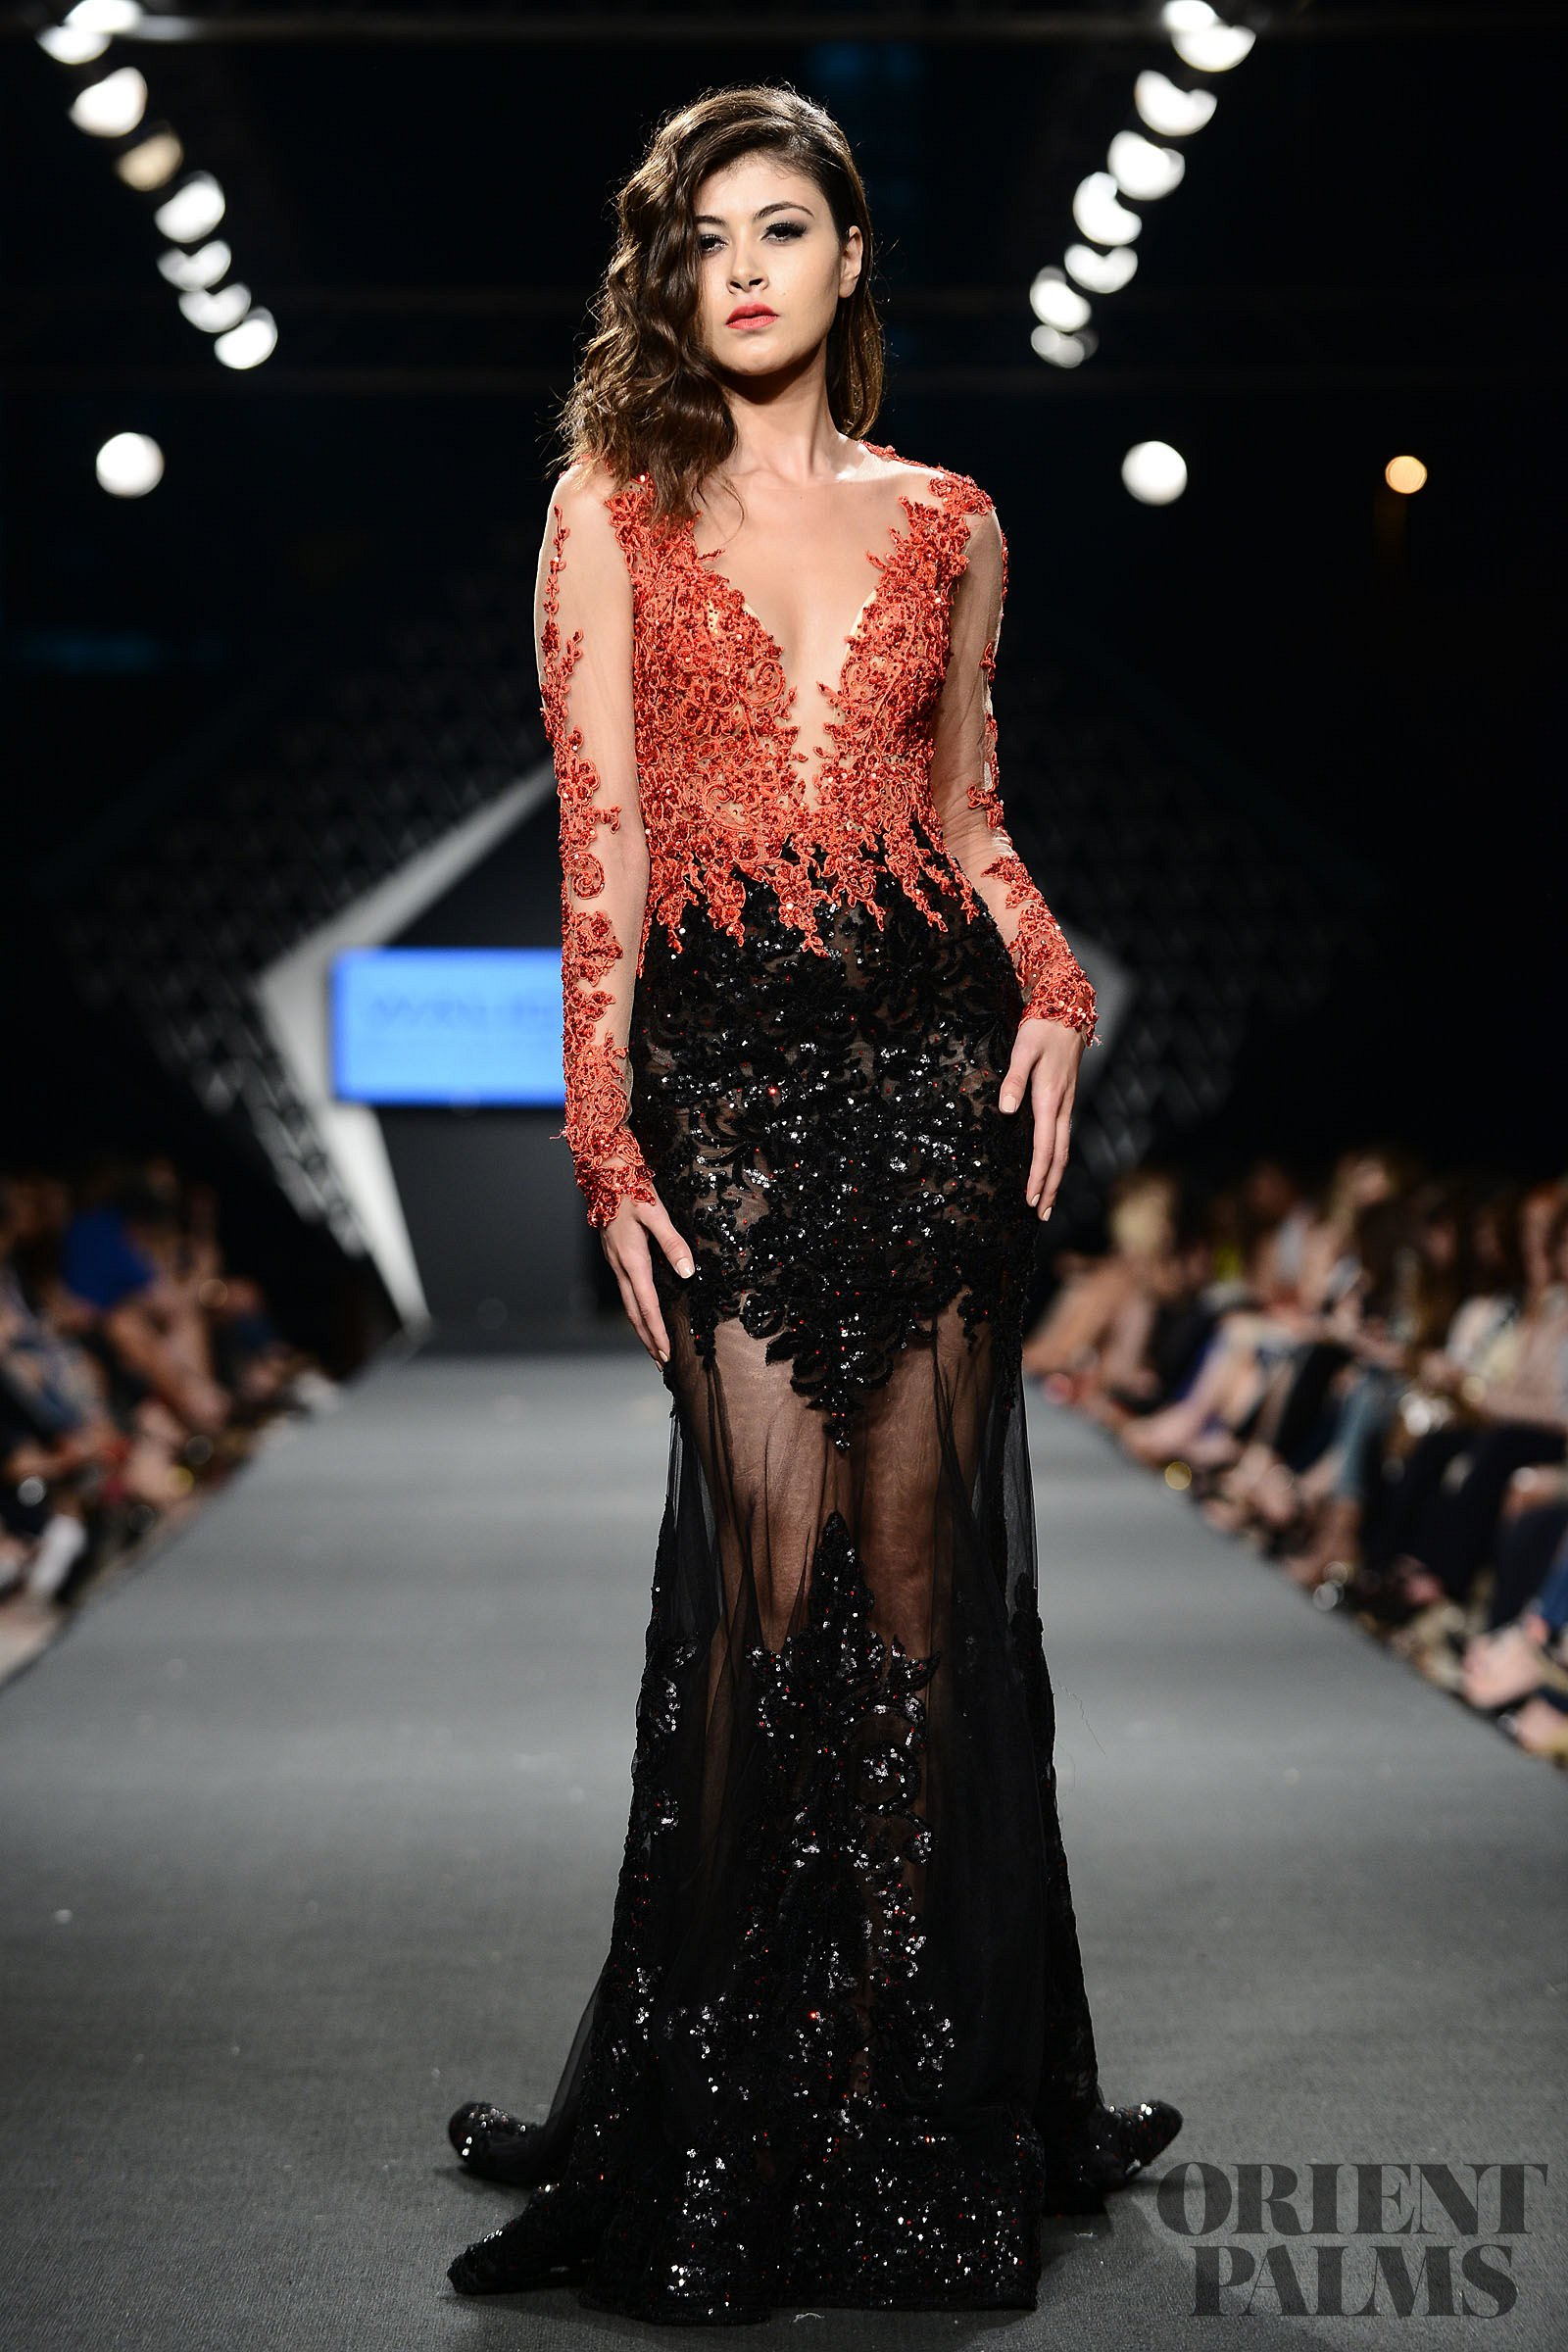 Walid Shehab 2014 collection - Couture Jennifer Lopez Dresses